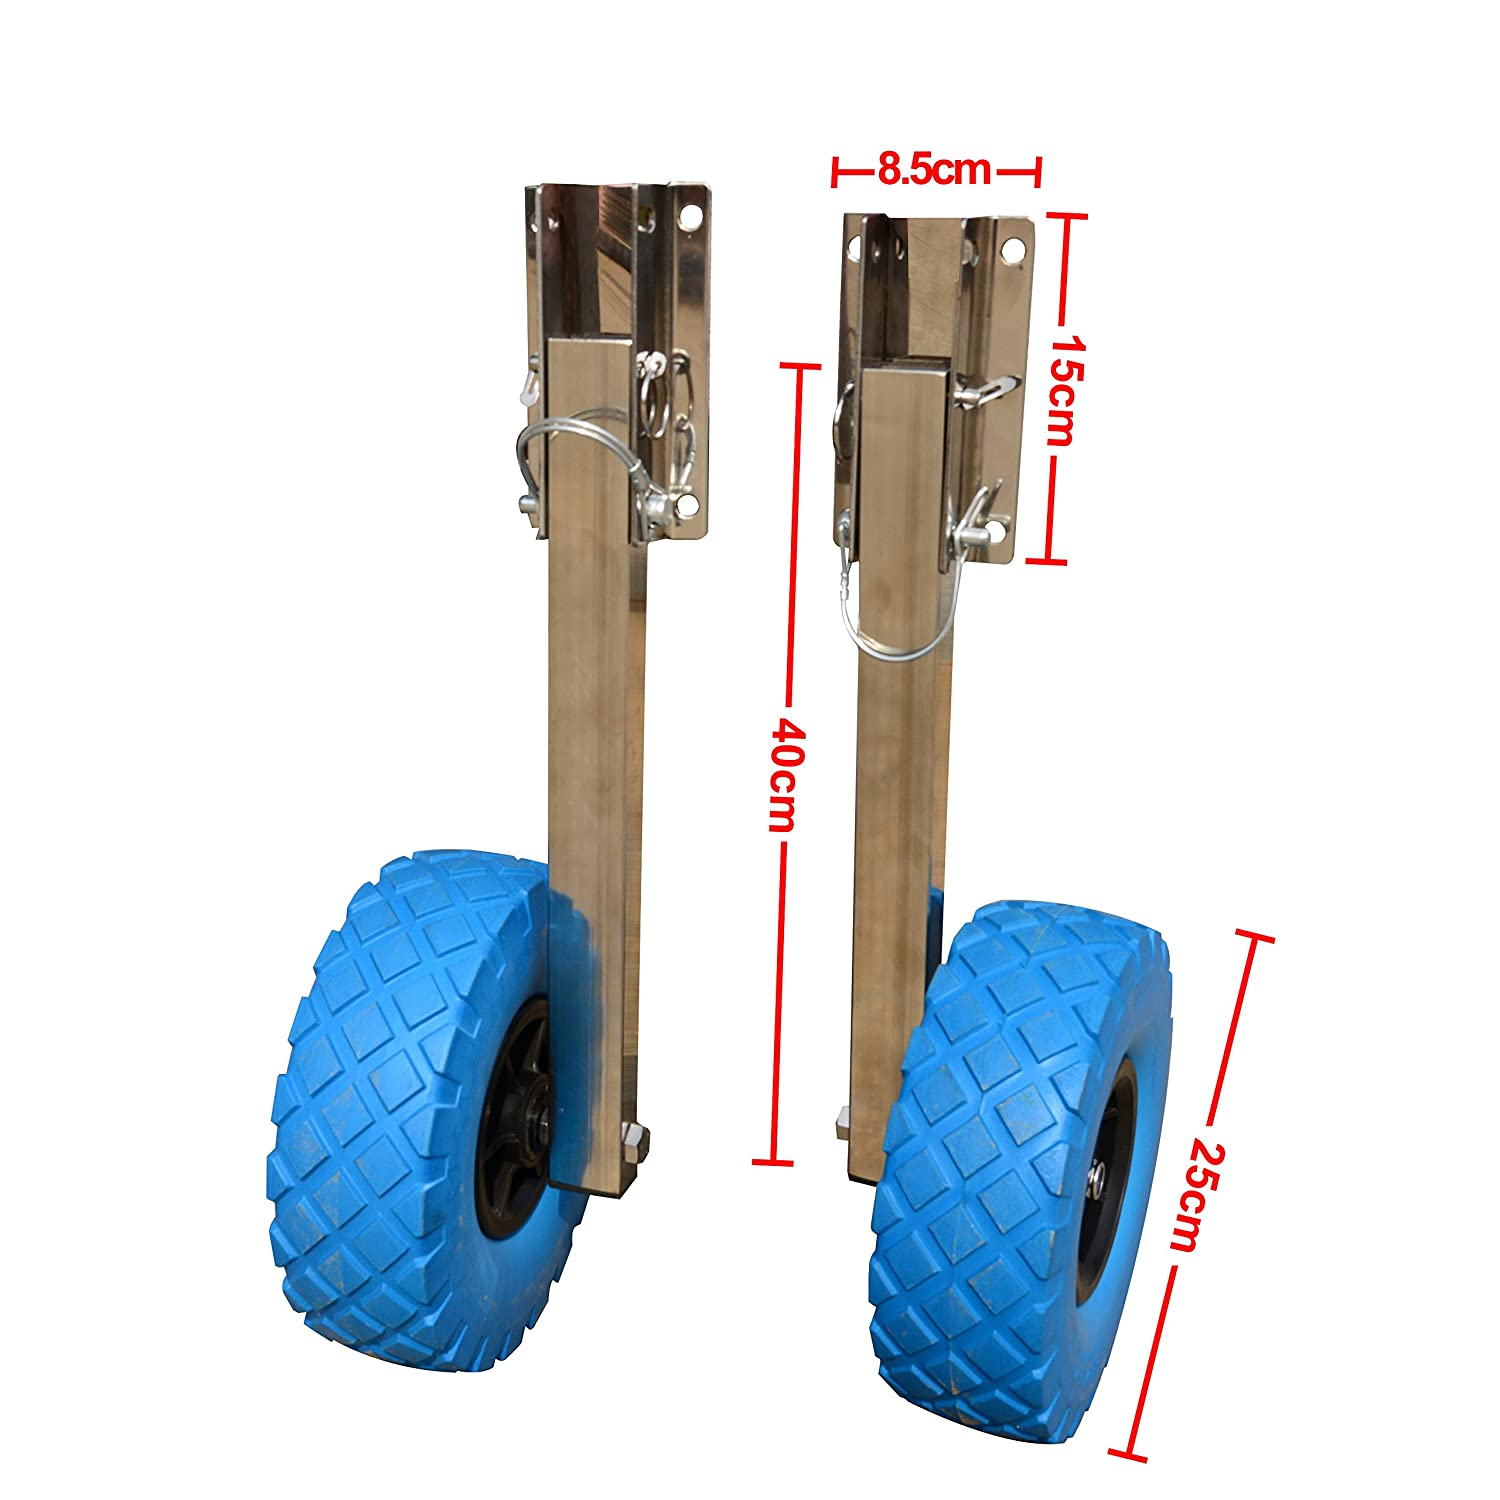 Stainless Steel Boat Transom Launching Wheels Dolly For Inflatable boat Bris boat